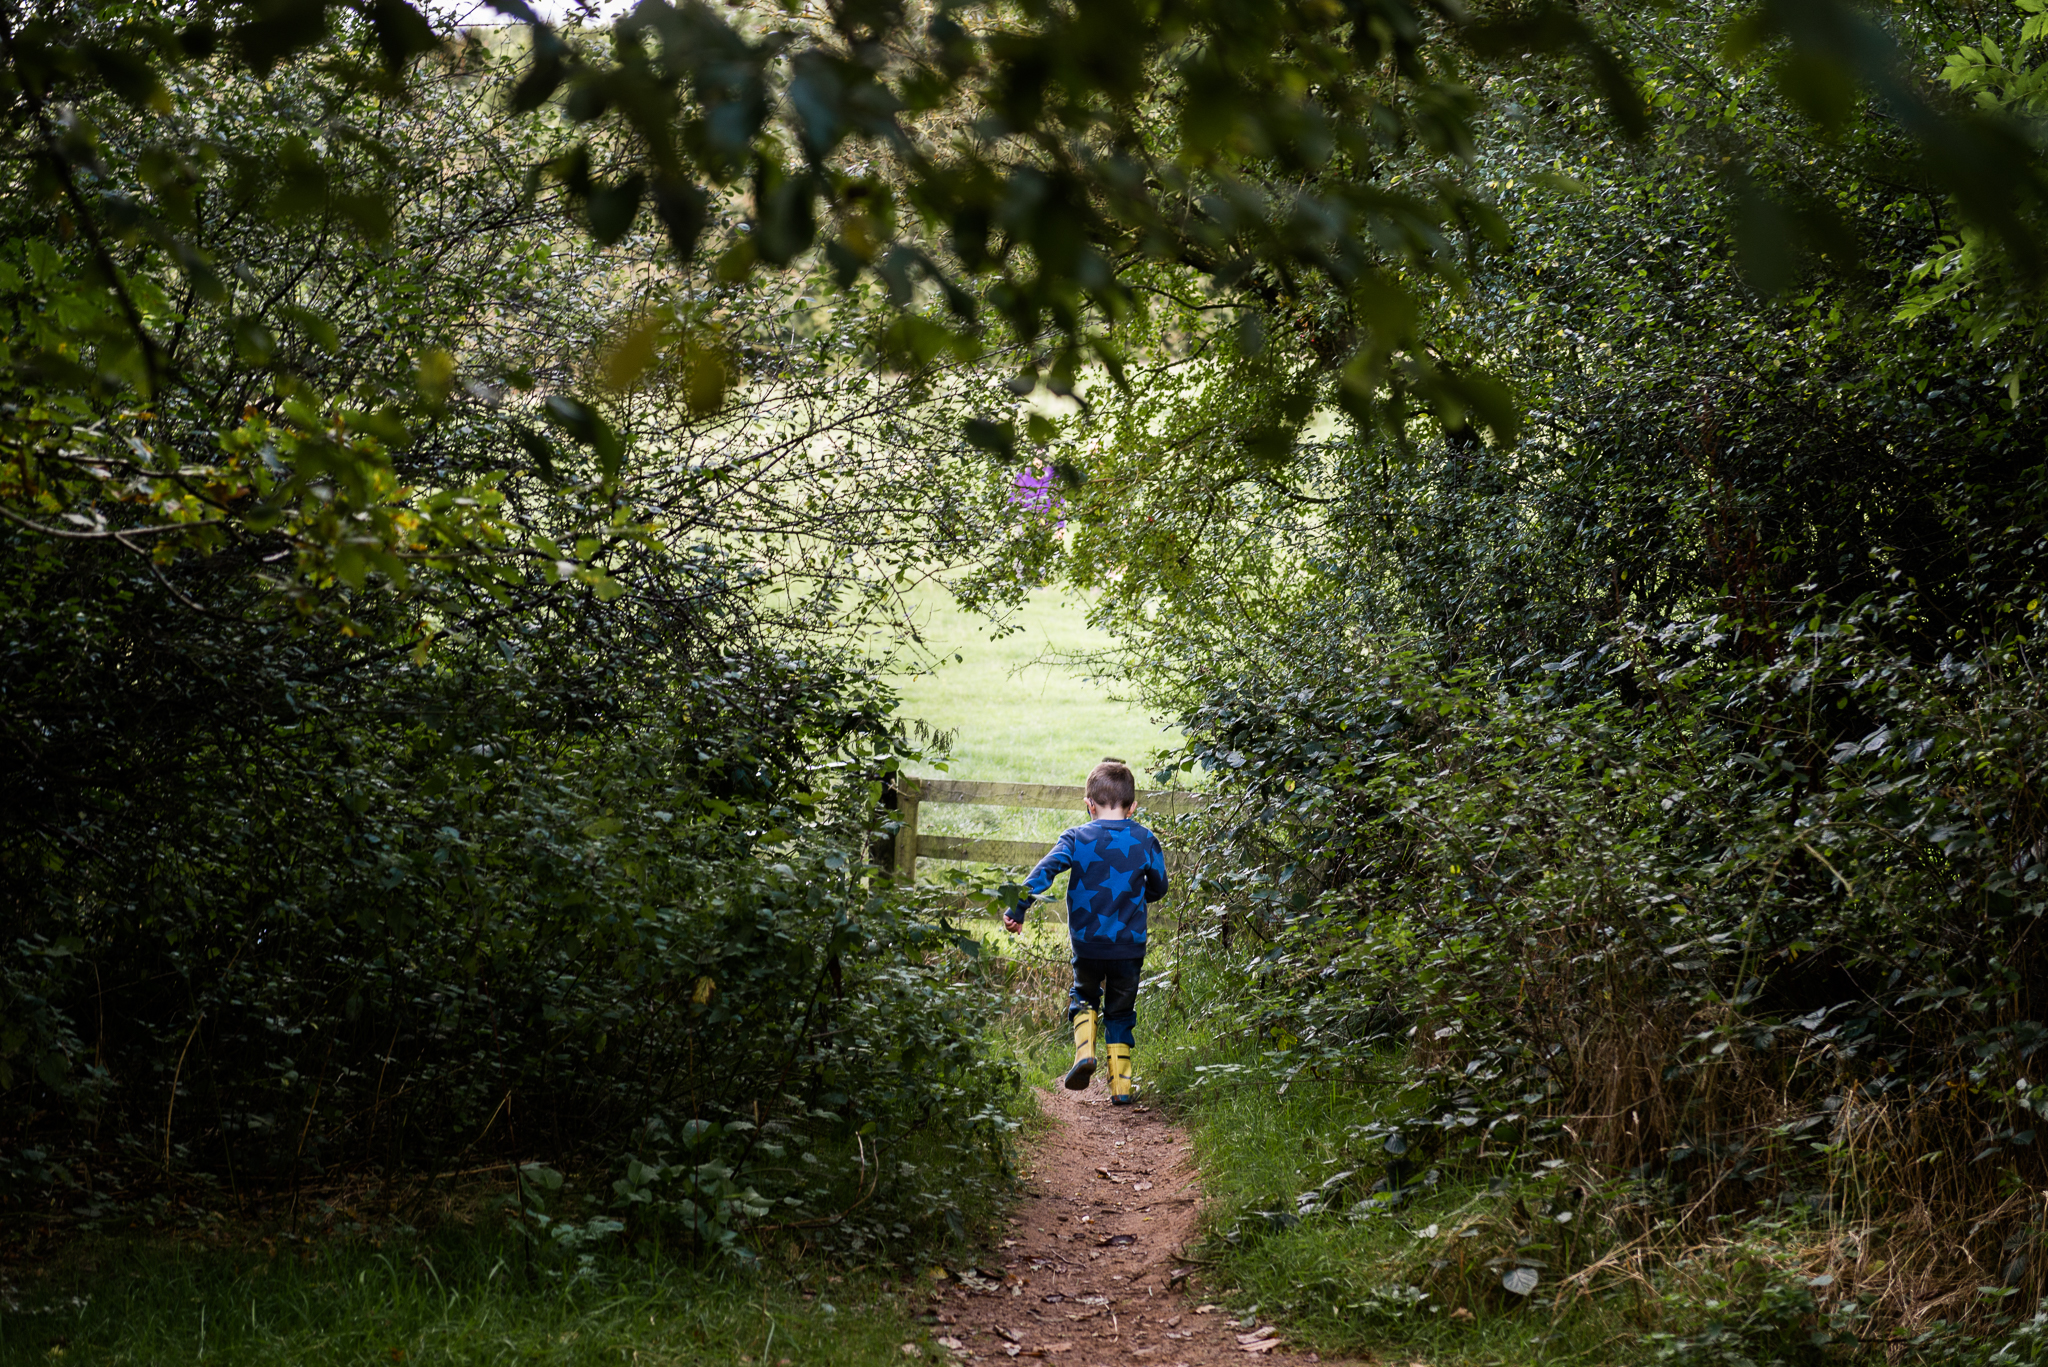 Documentary Family Photography at Clent Hills, Worcestershire Family Lifestyle Photography Woods Outdoors Trees Flying Kite - Jenny Harper-24.jpg